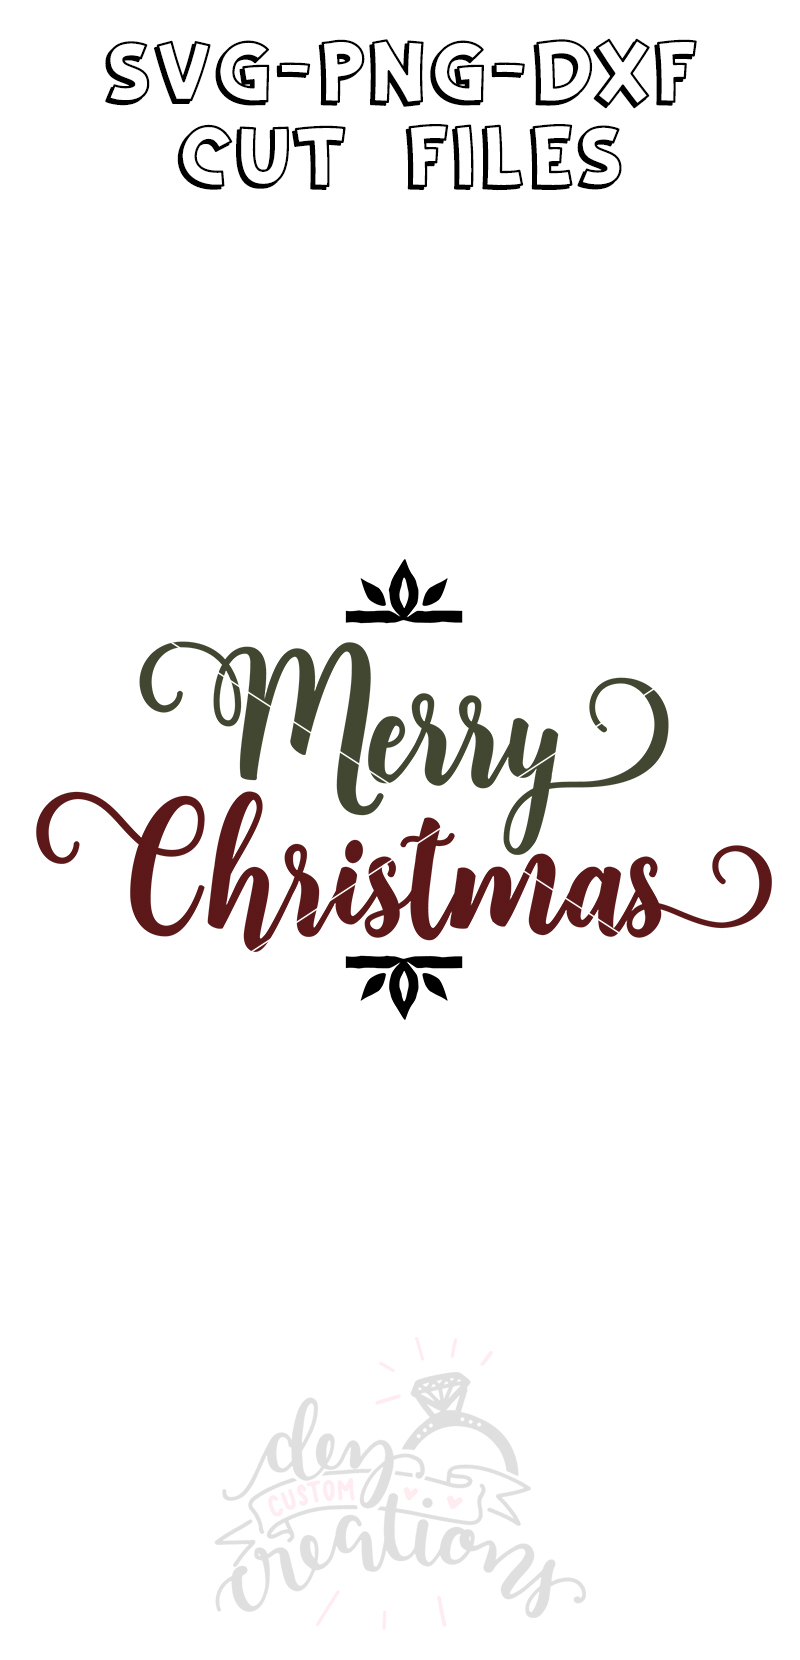 Merry Christmas - SVG DXF PNG Cut files example image 2